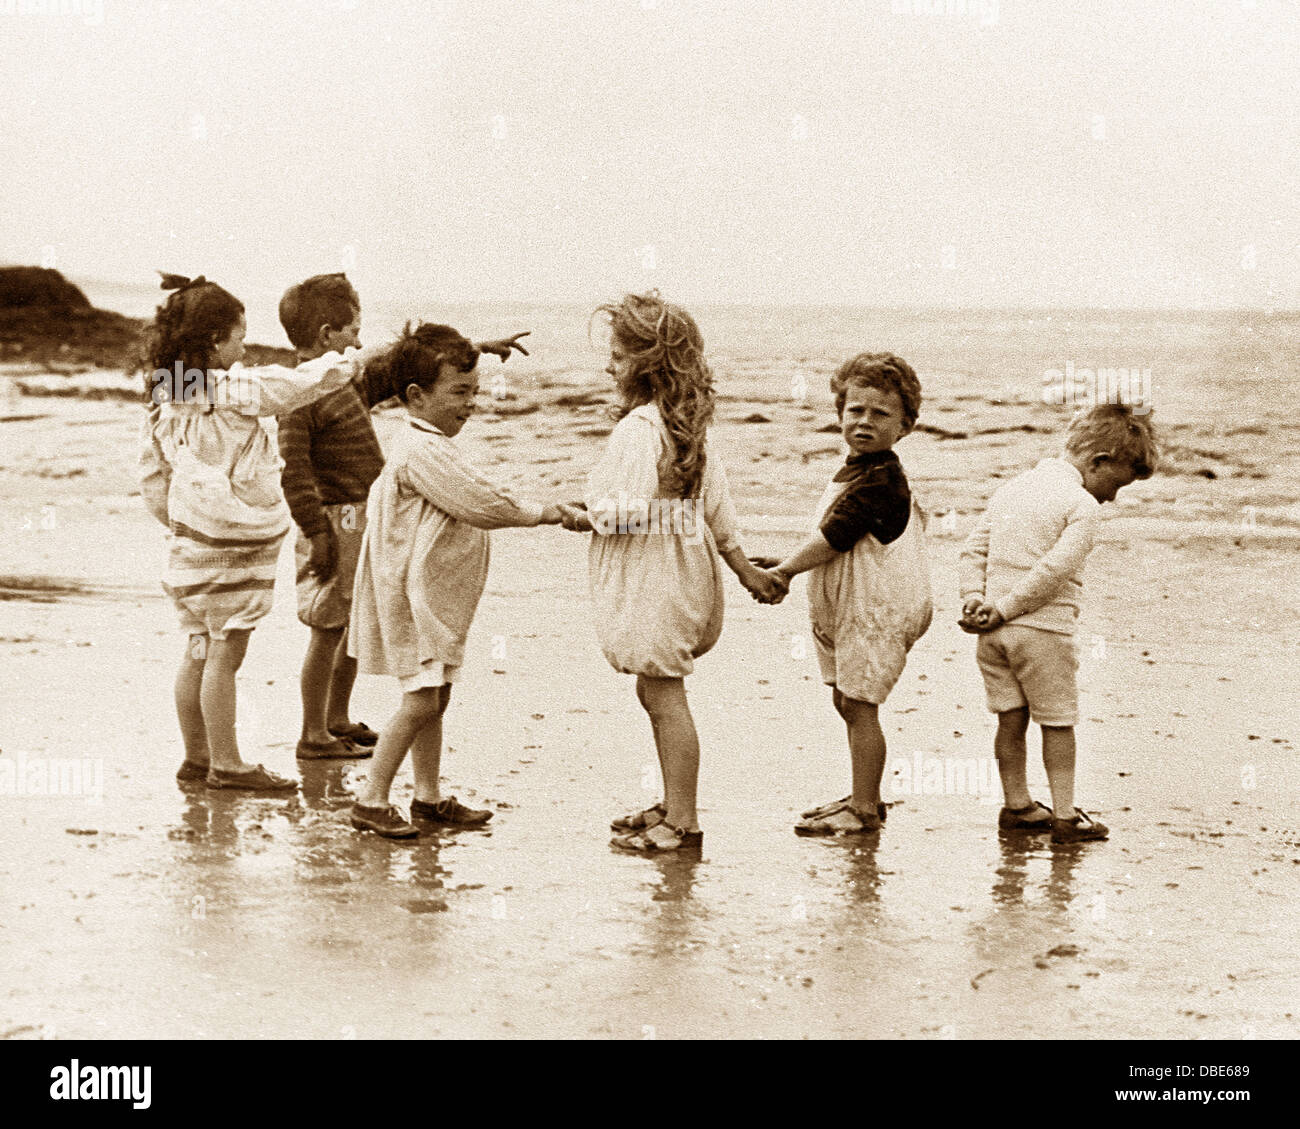 Children Playing on the Beach Victorian period - Stock Image